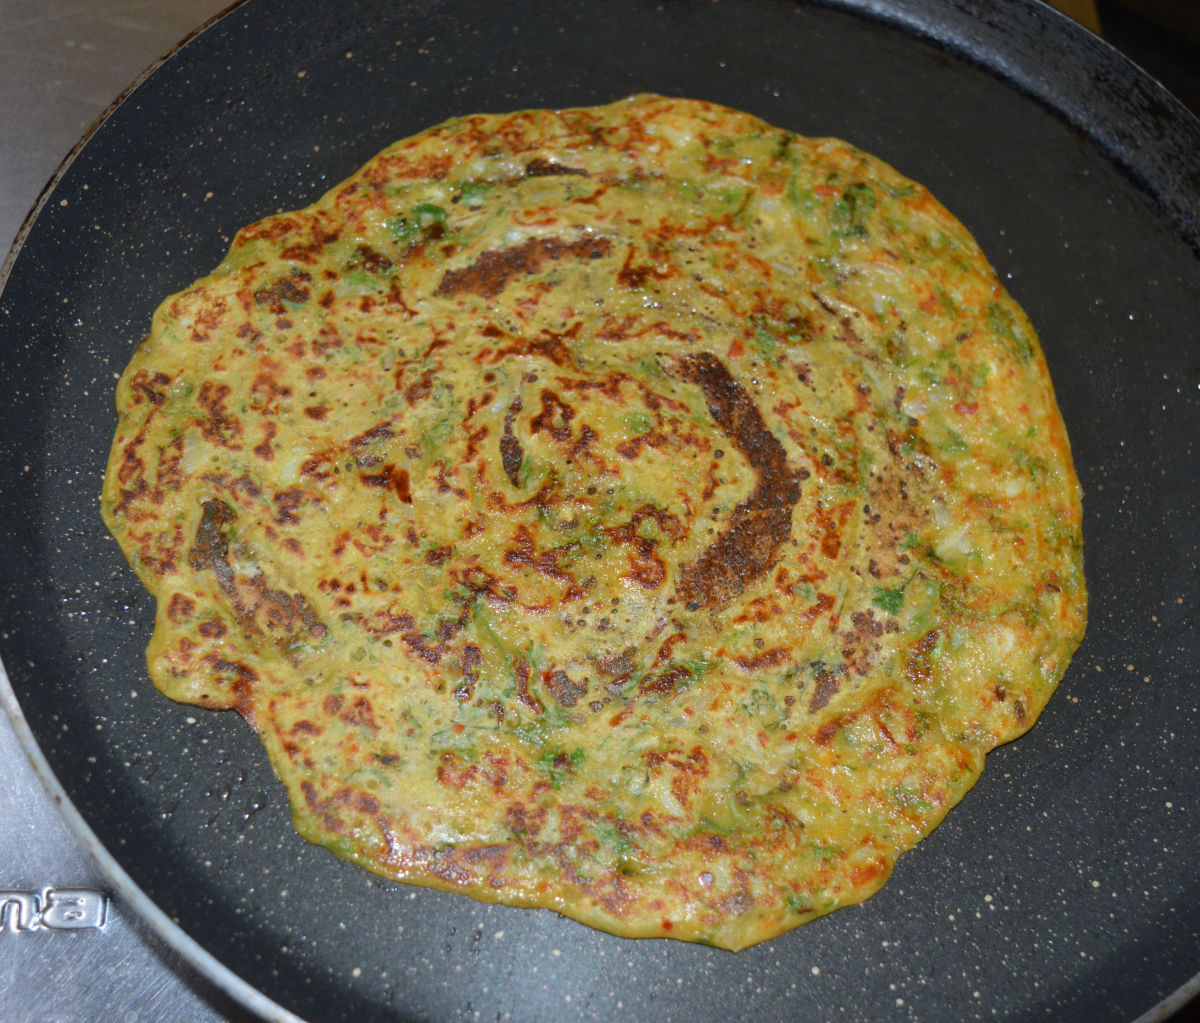 wheat-flour-and-potato-spicy-pancake-recipe